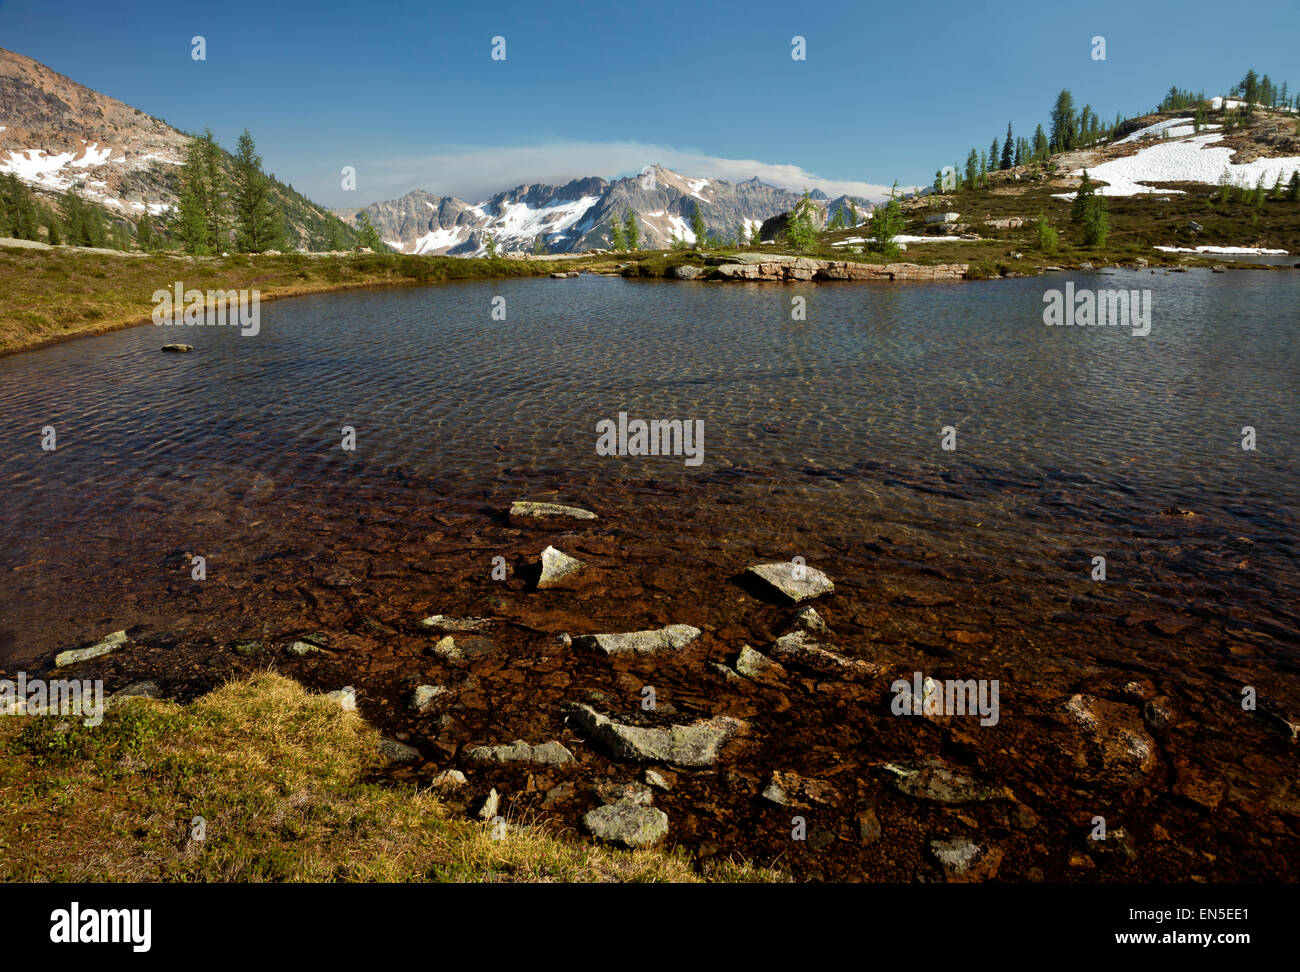 WASHINGTON - Smoke from several forest fires blowing up over a ridge south of Upper Snowy Lake in the North Cascades. - Stock Image